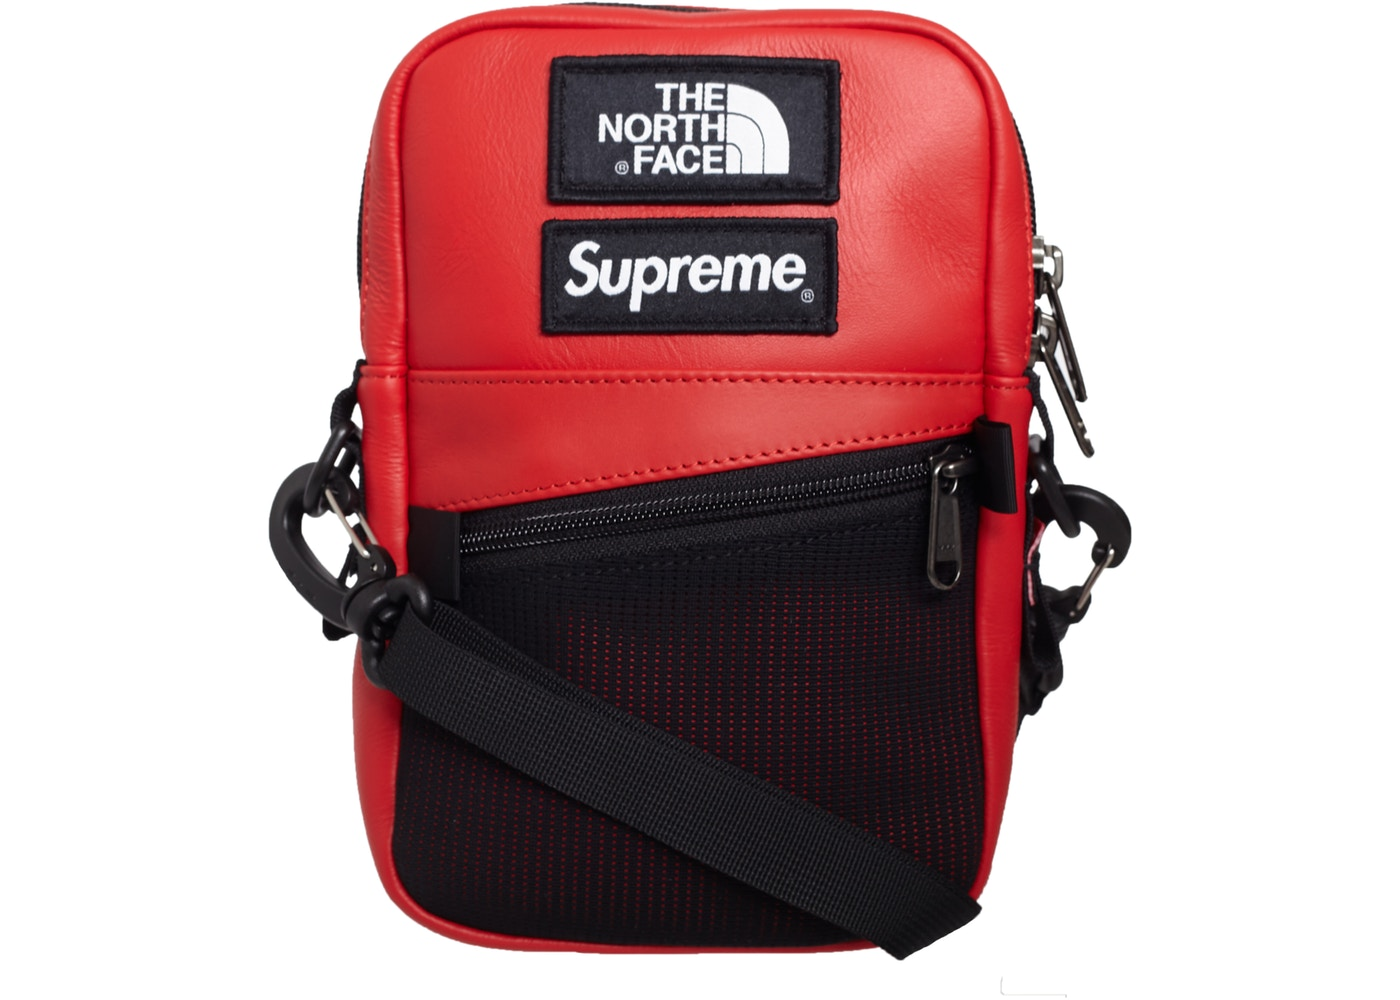 Supreme The North Face Leather Shoulder Bag Red - FW18 6b62ef0c407e4